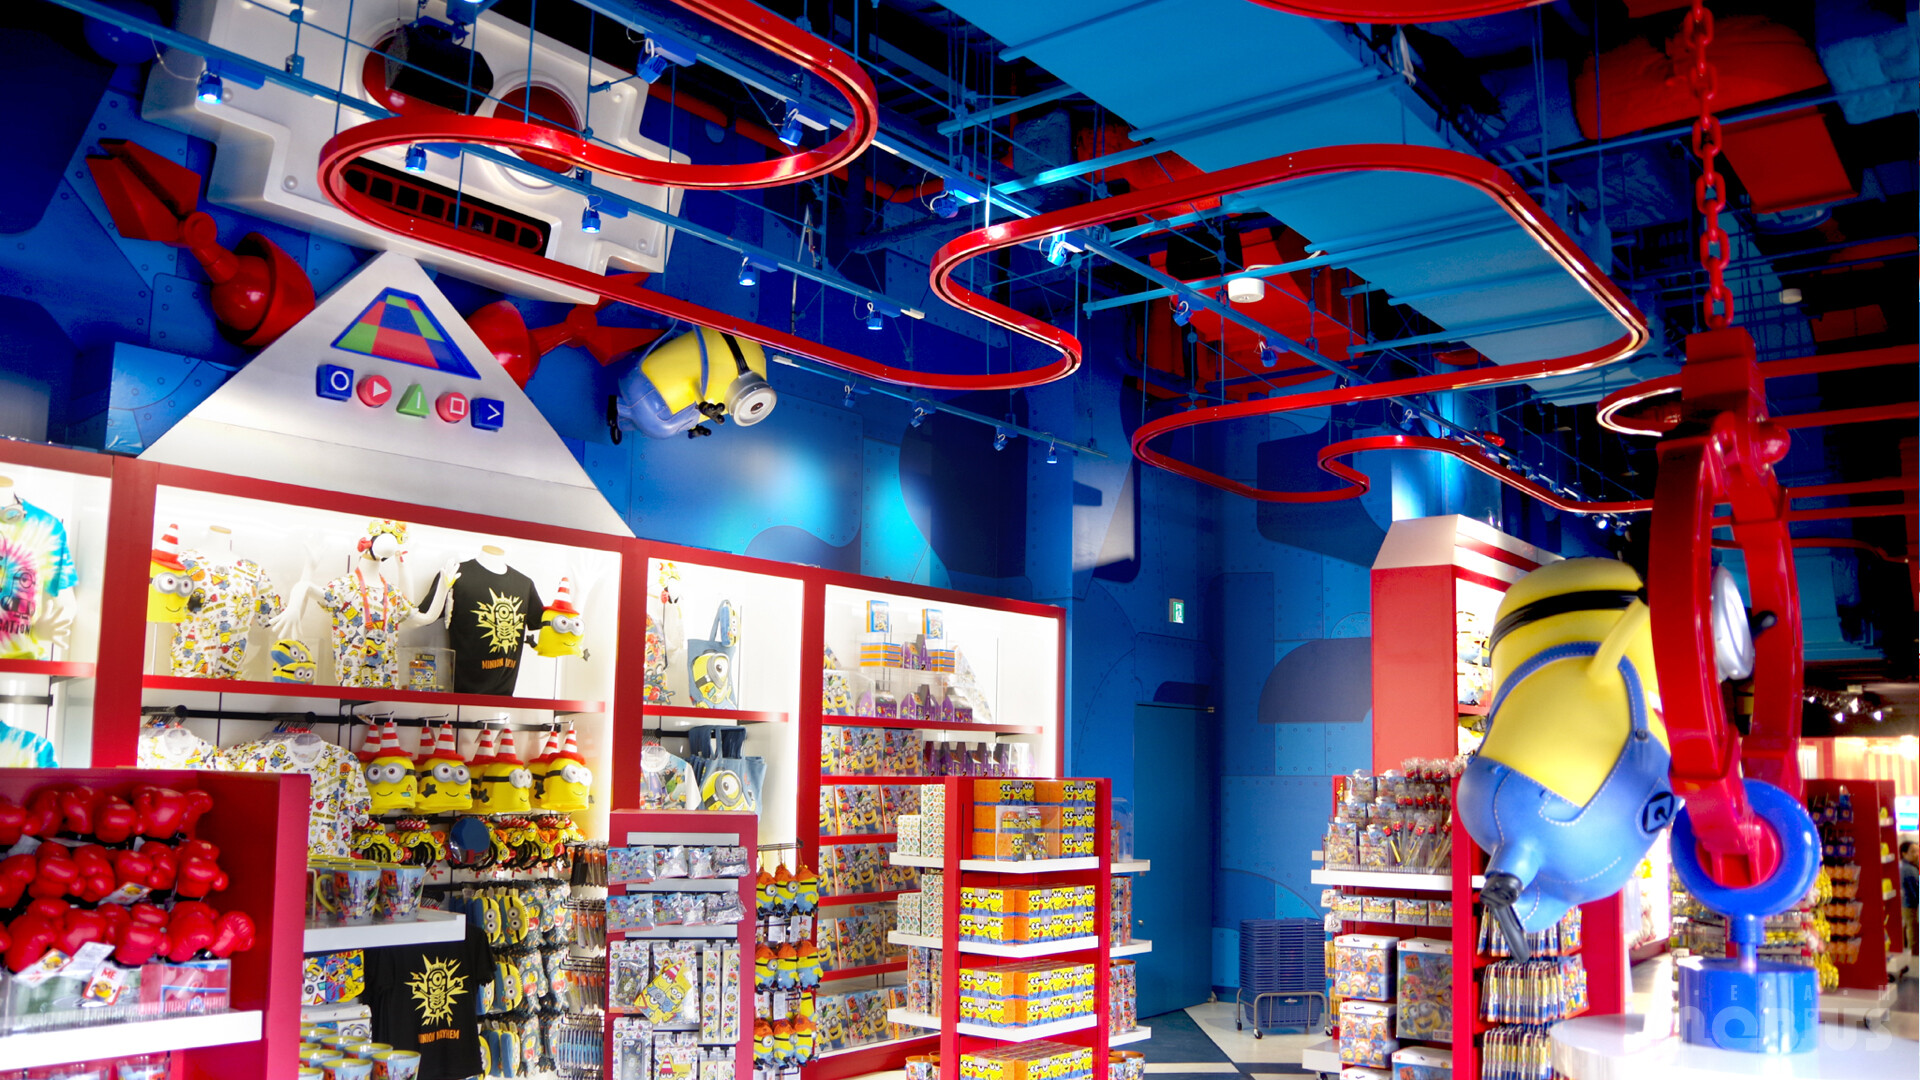 Production image for the interior of the Toy Store retail store area